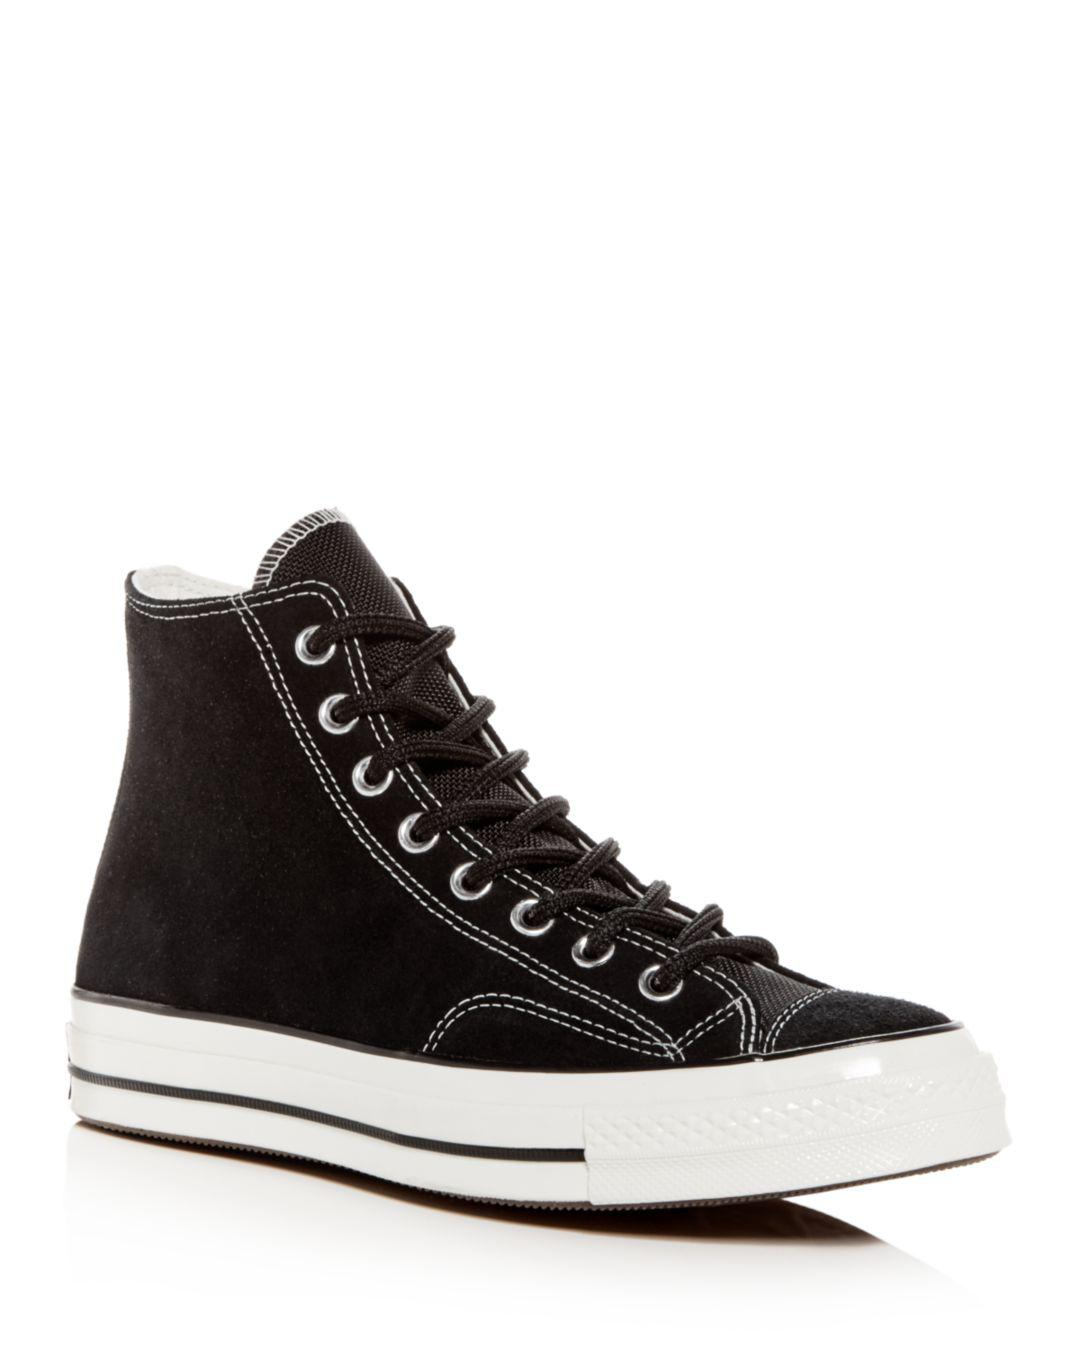 8735108f12e392 Converse Men s Chuck Taylor All Star 70 Suede High-top Sneakers in ...